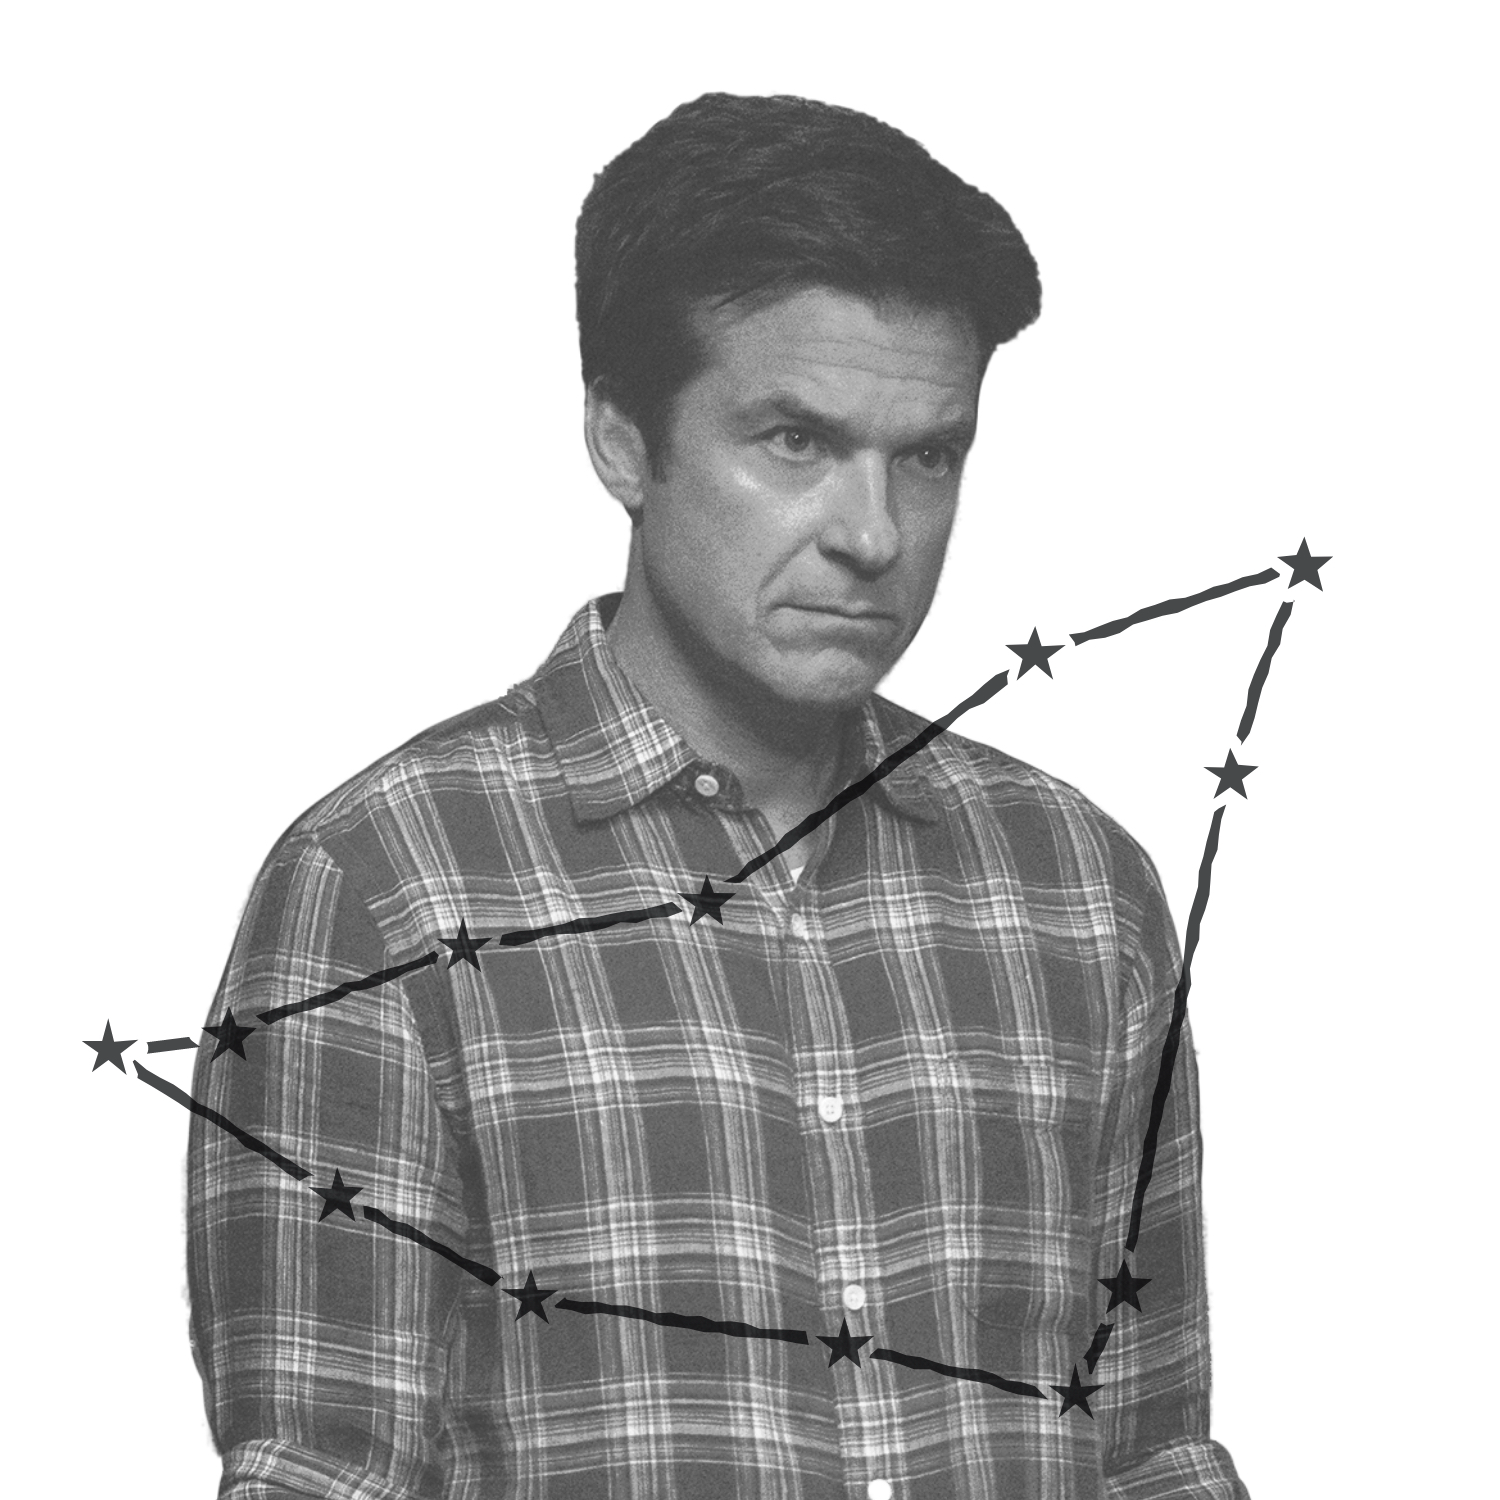 Marty Byrde (played by Jason Bateman) looks downright criminal in his flannel button-down in this still from Ozark. Over the image is an illustration of Marty's zodiac constellation.